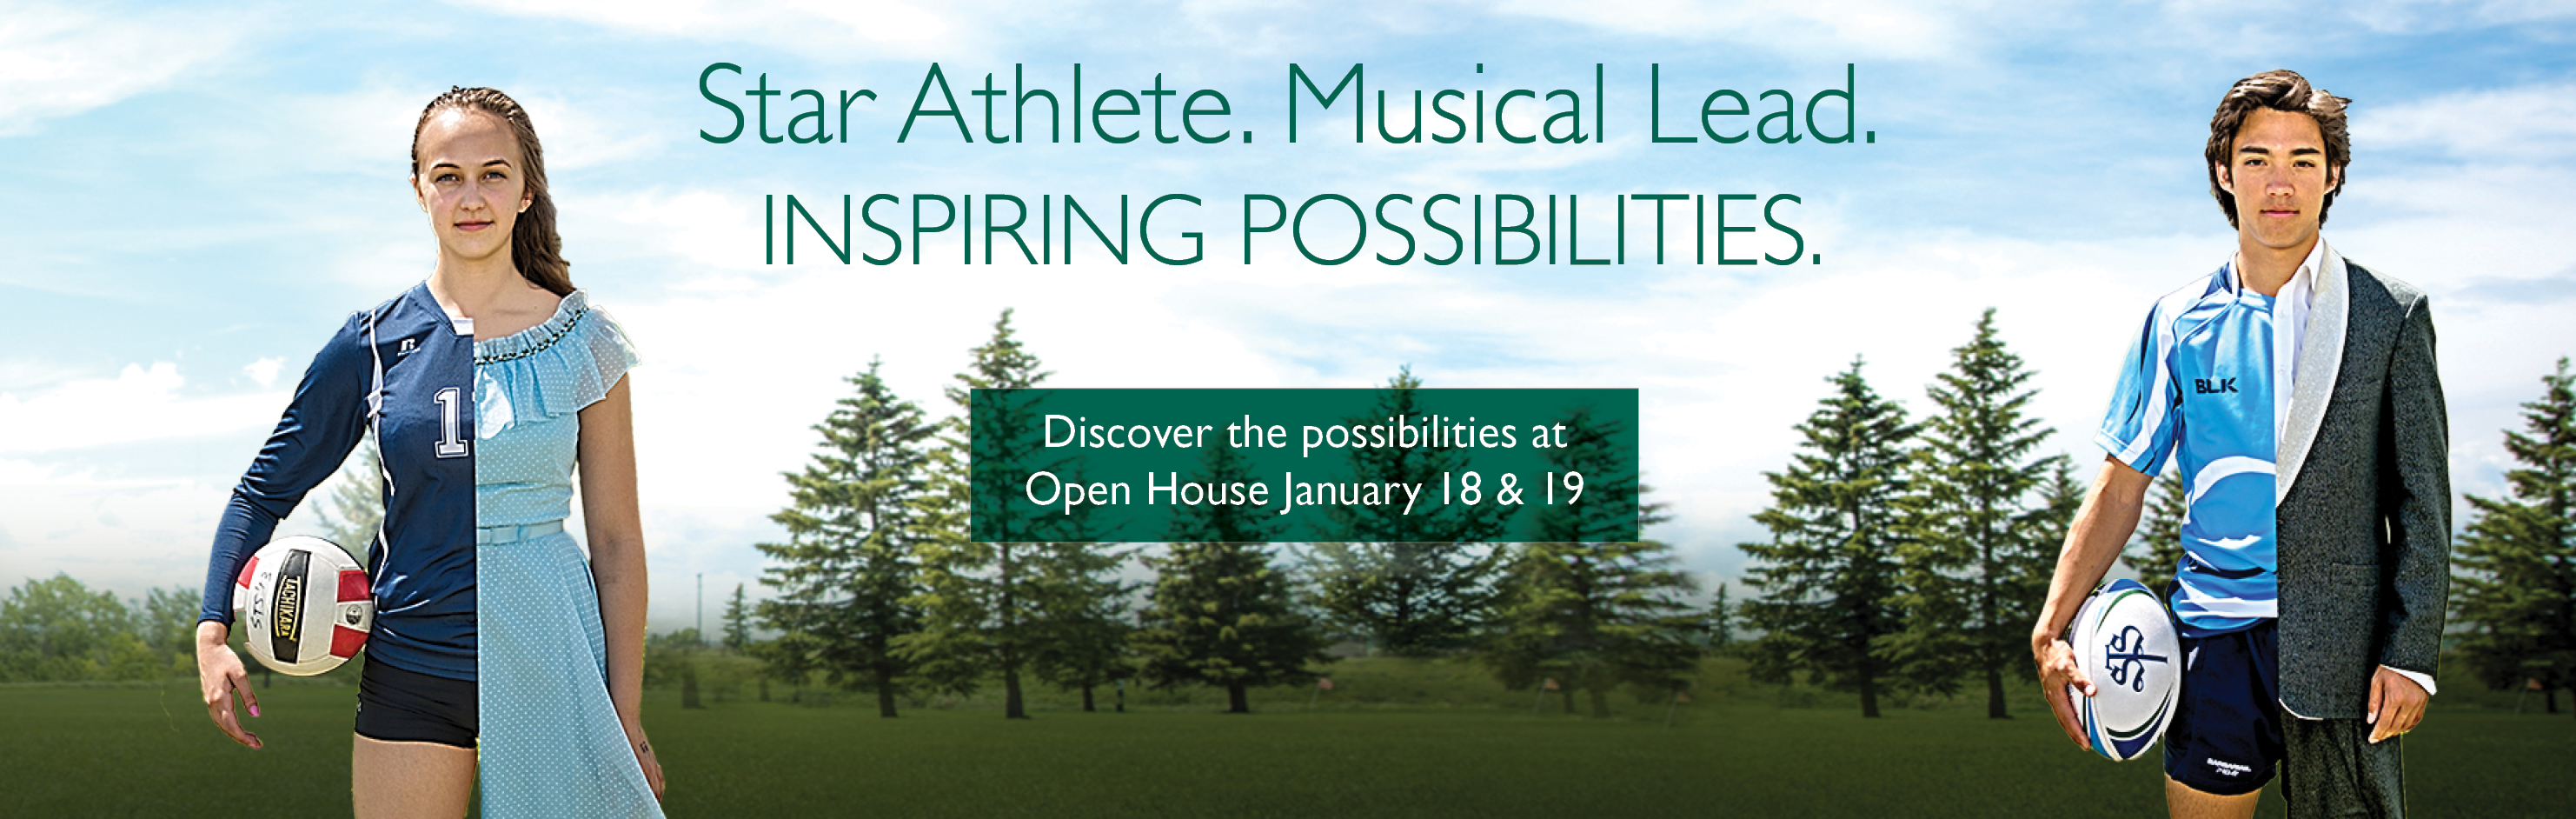 Open House at STS - January 18 and 19